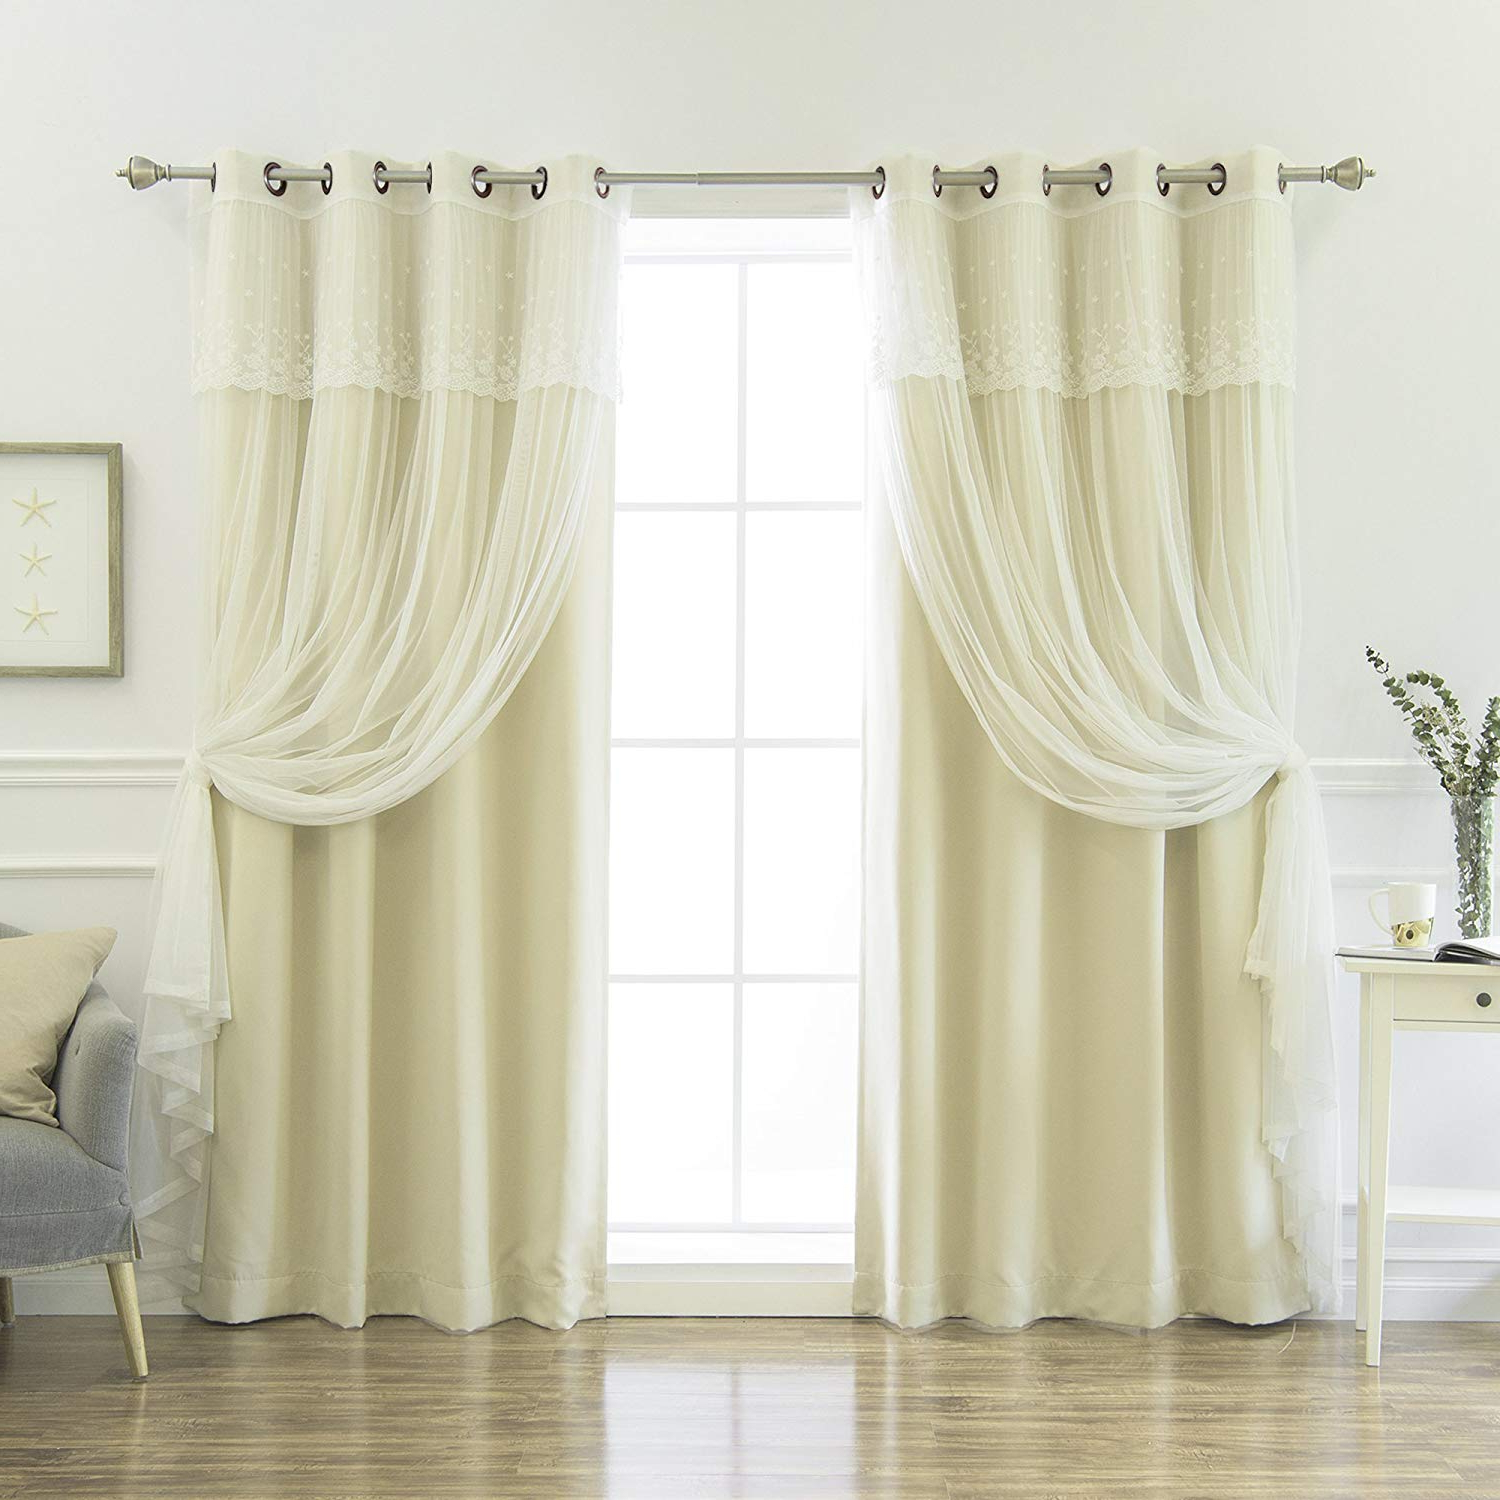 "Best Home Fashion Mix & Match Tulle Sheer With Attached Valance & Solid Blackout Curtain Set – Stainless Steel Nickel Grommet Top – Beige – 52"" W X Pertaining To Most Current Tulle Sheer With Attached Valance And Blackout 4 Piece Curtain Panel Pairs (View 15 of 20)"